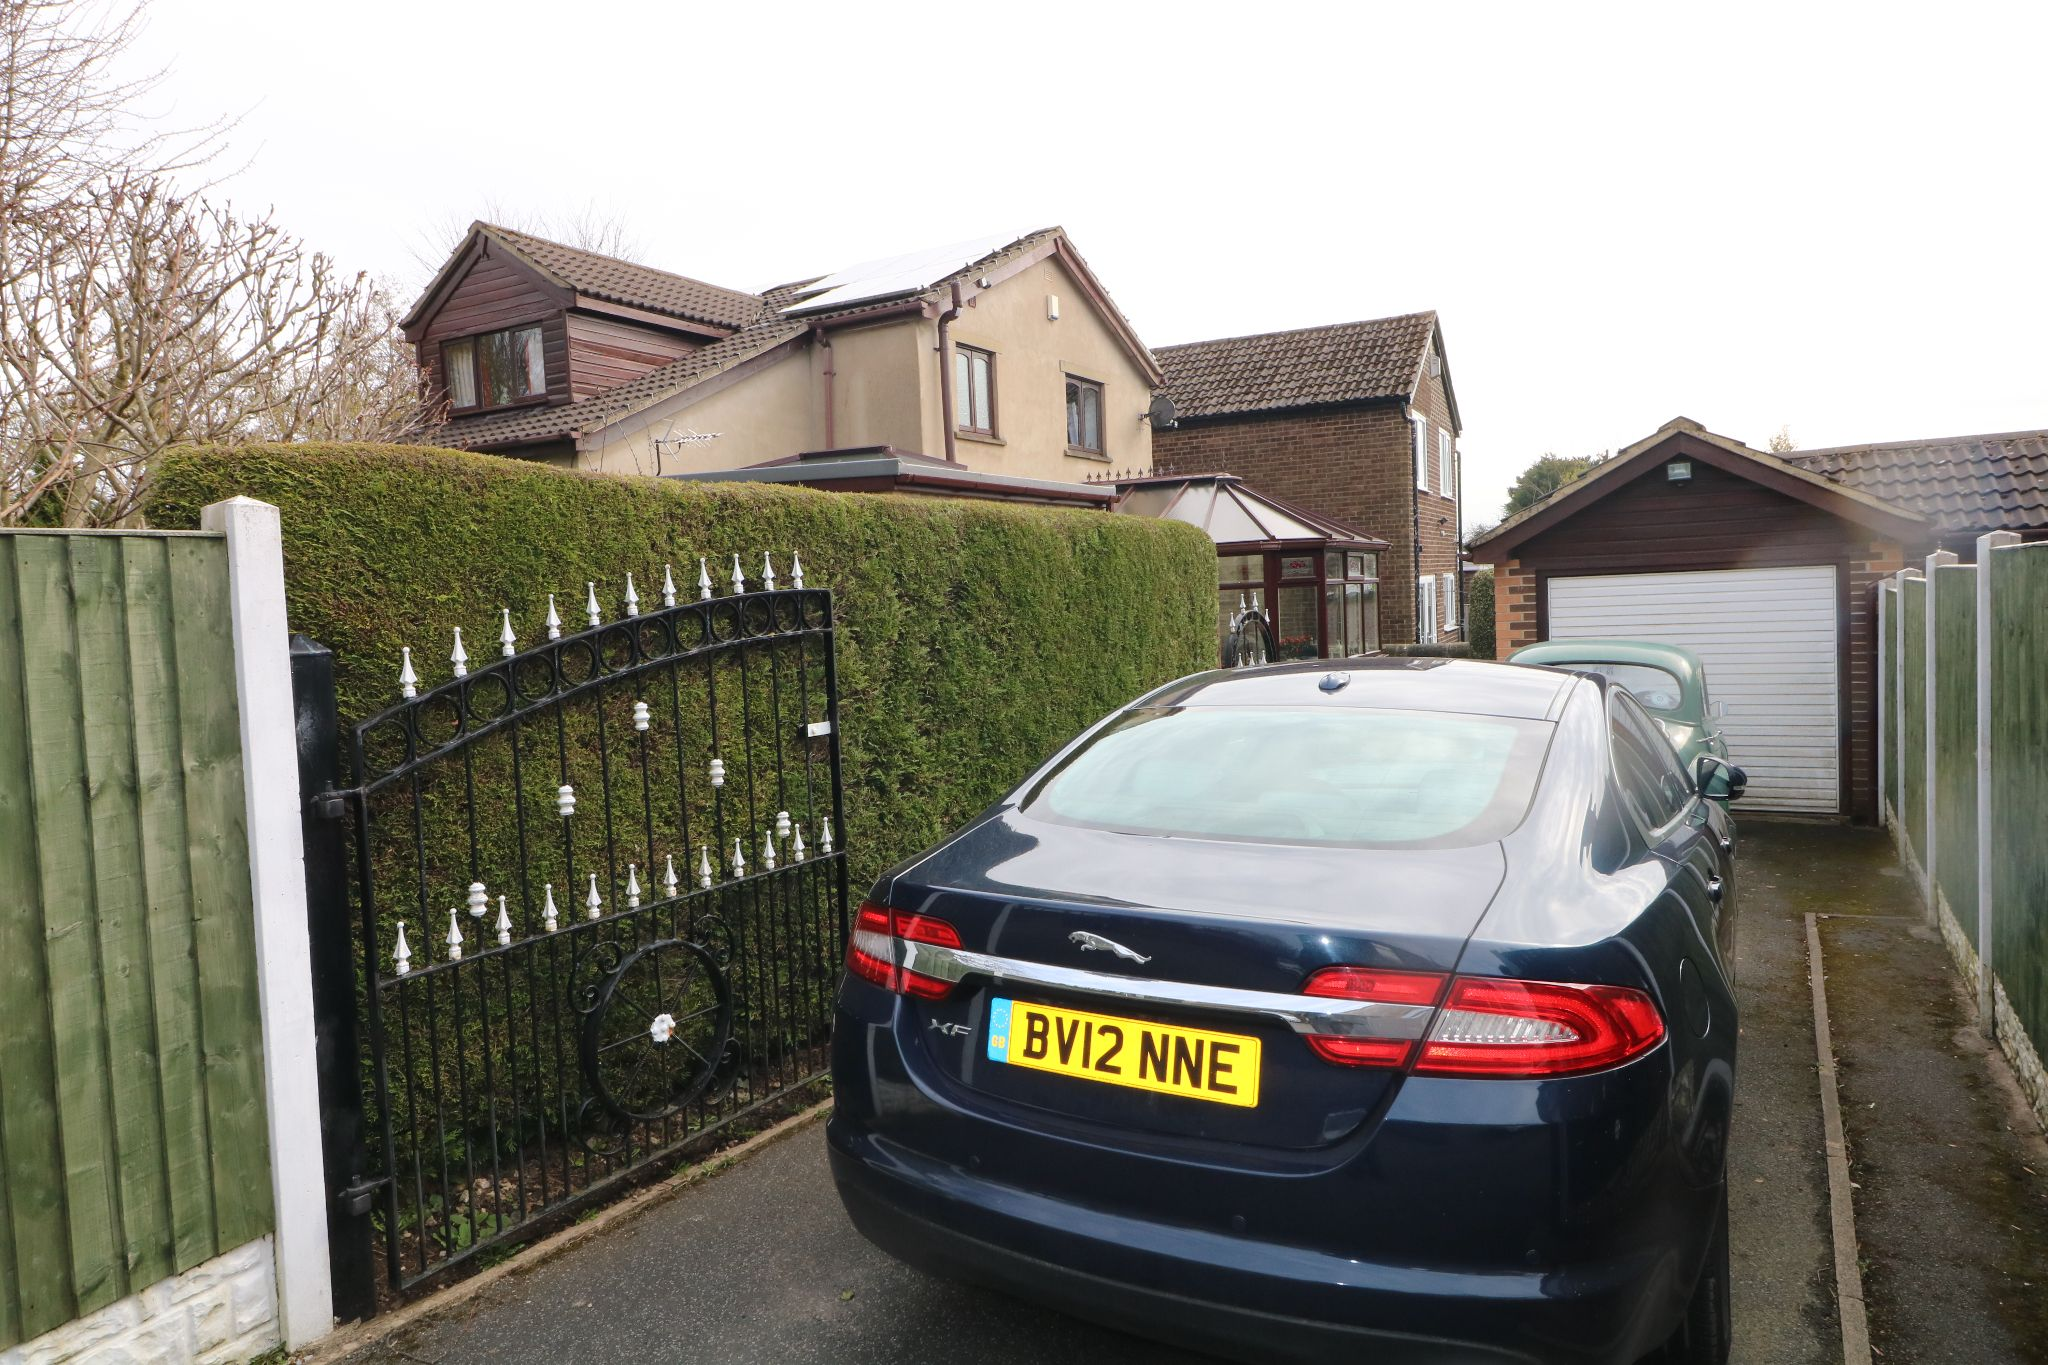 3 Bedroom Detached House For Sale - Private Driveway